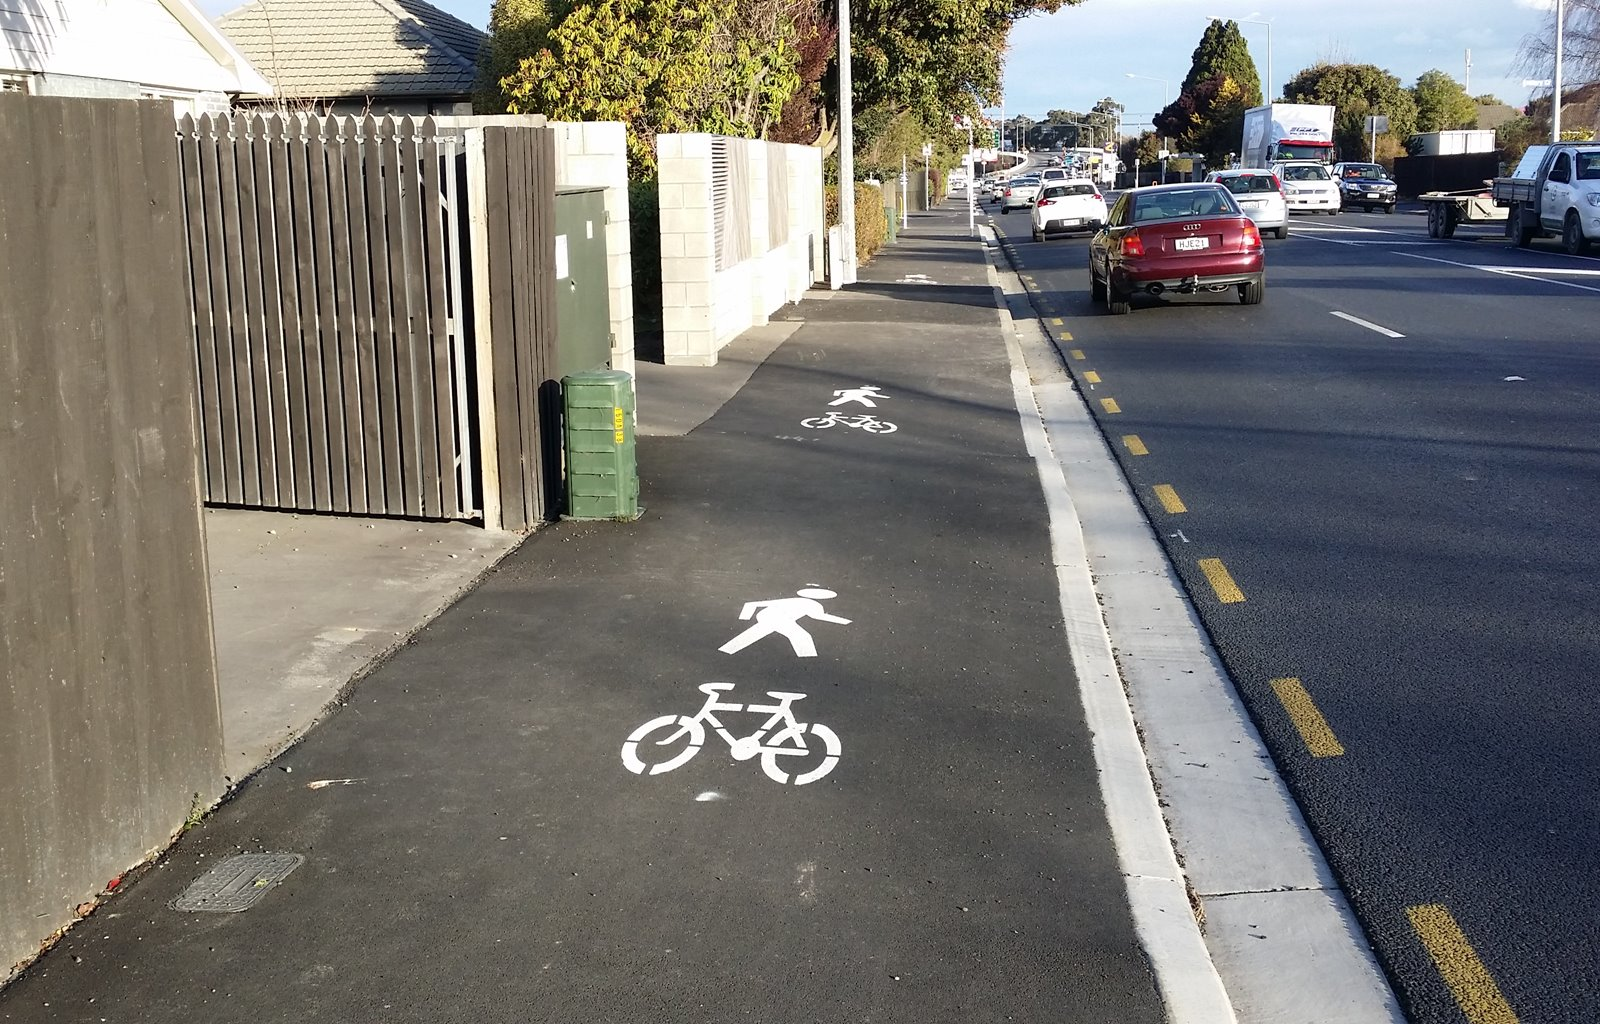 Curletts Rd: Best practice for cycling?